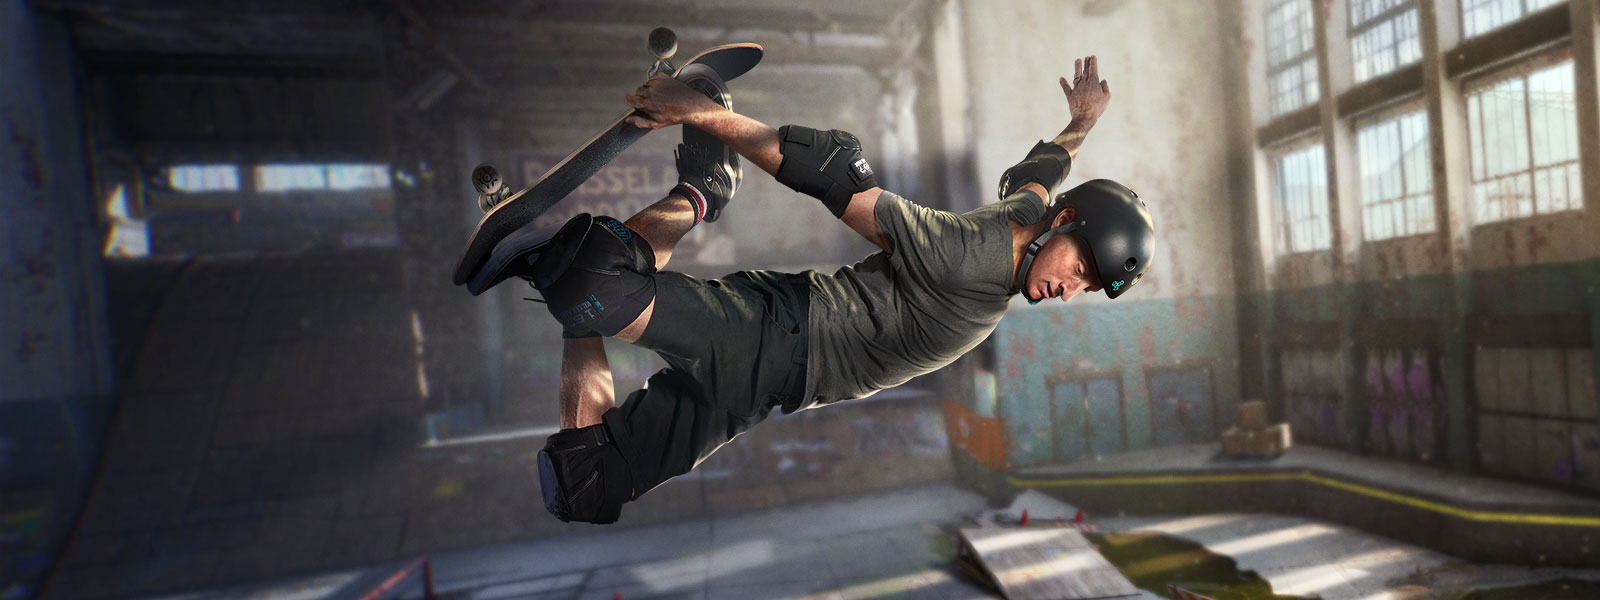 Tony Hawk rides a skateboard in a warehouse.